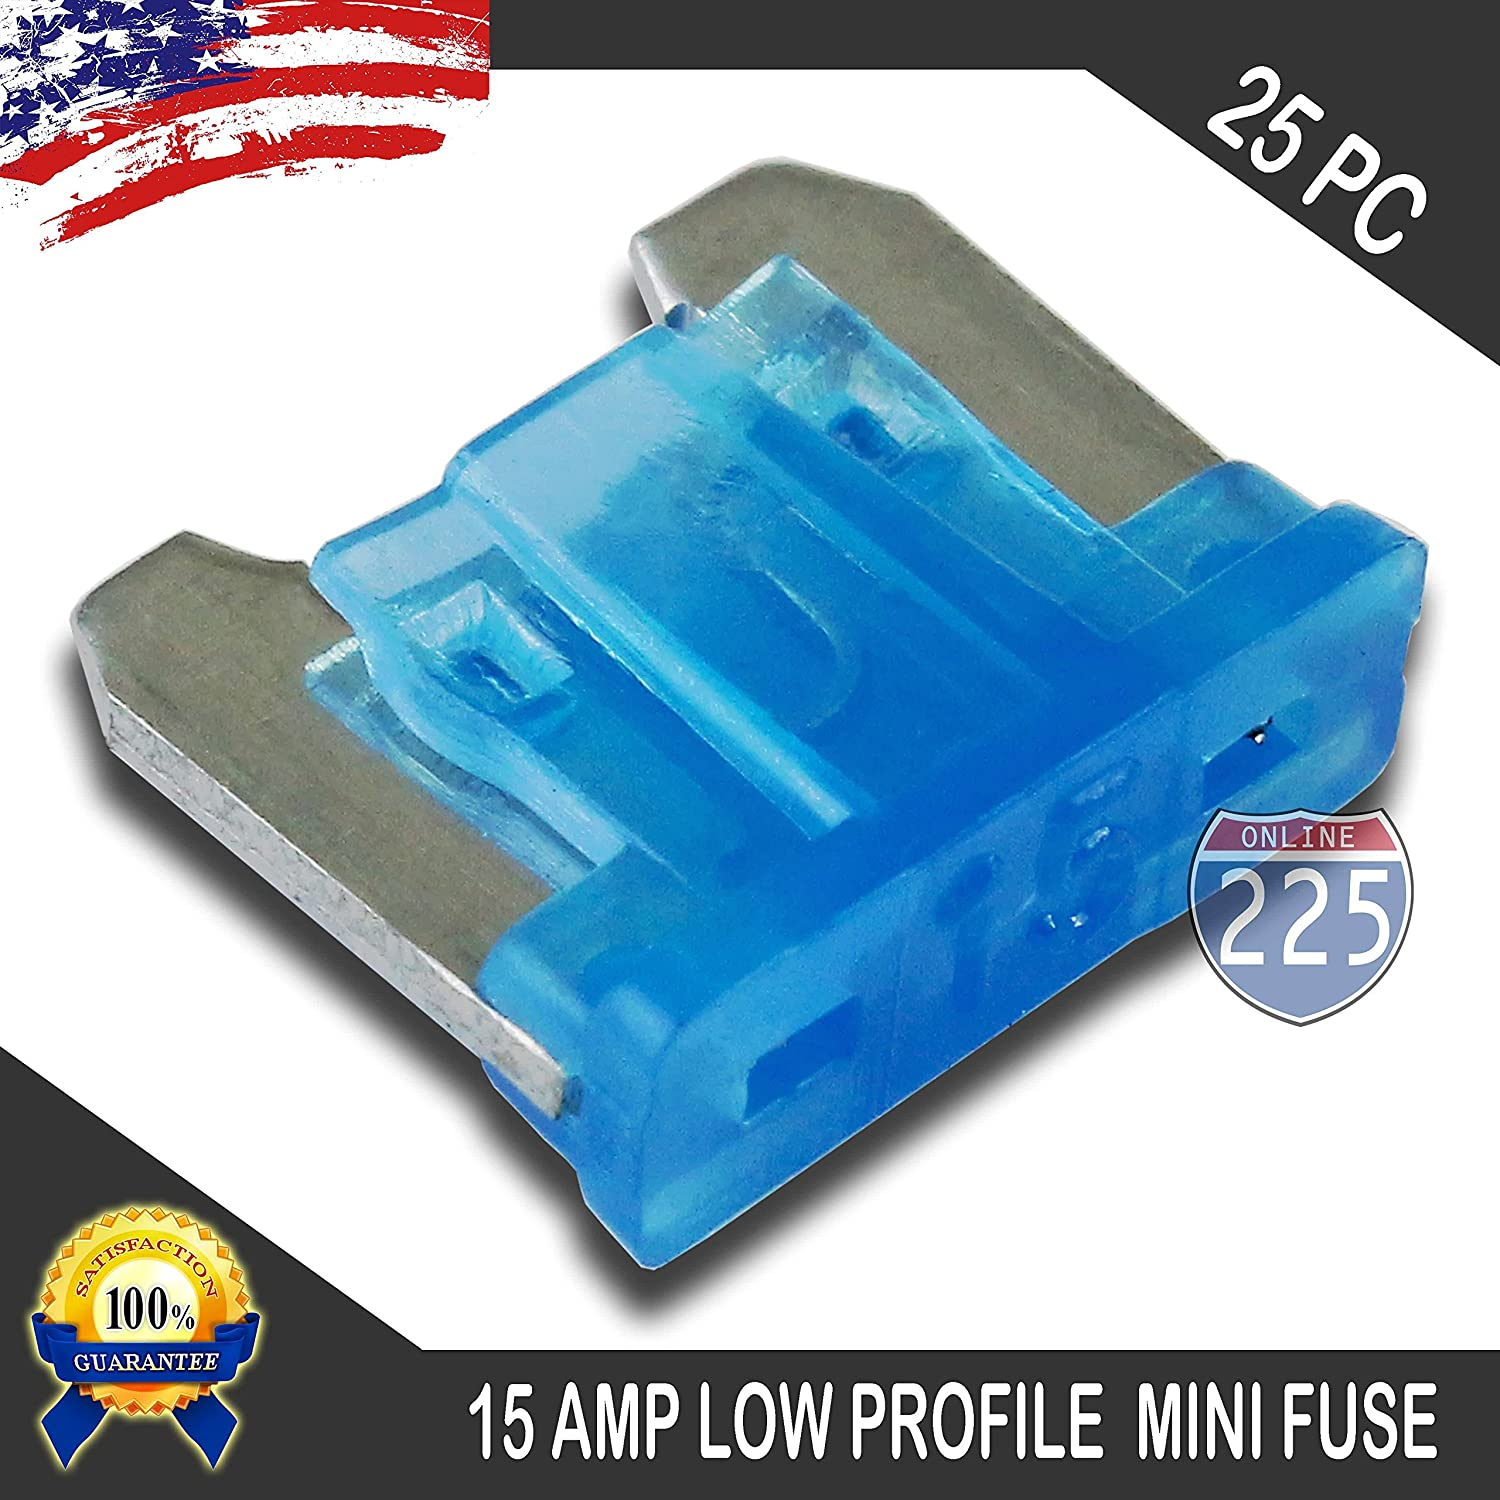 New 15A 15 Amp ATM Mini Blade AUTO Fuse 25 PACK